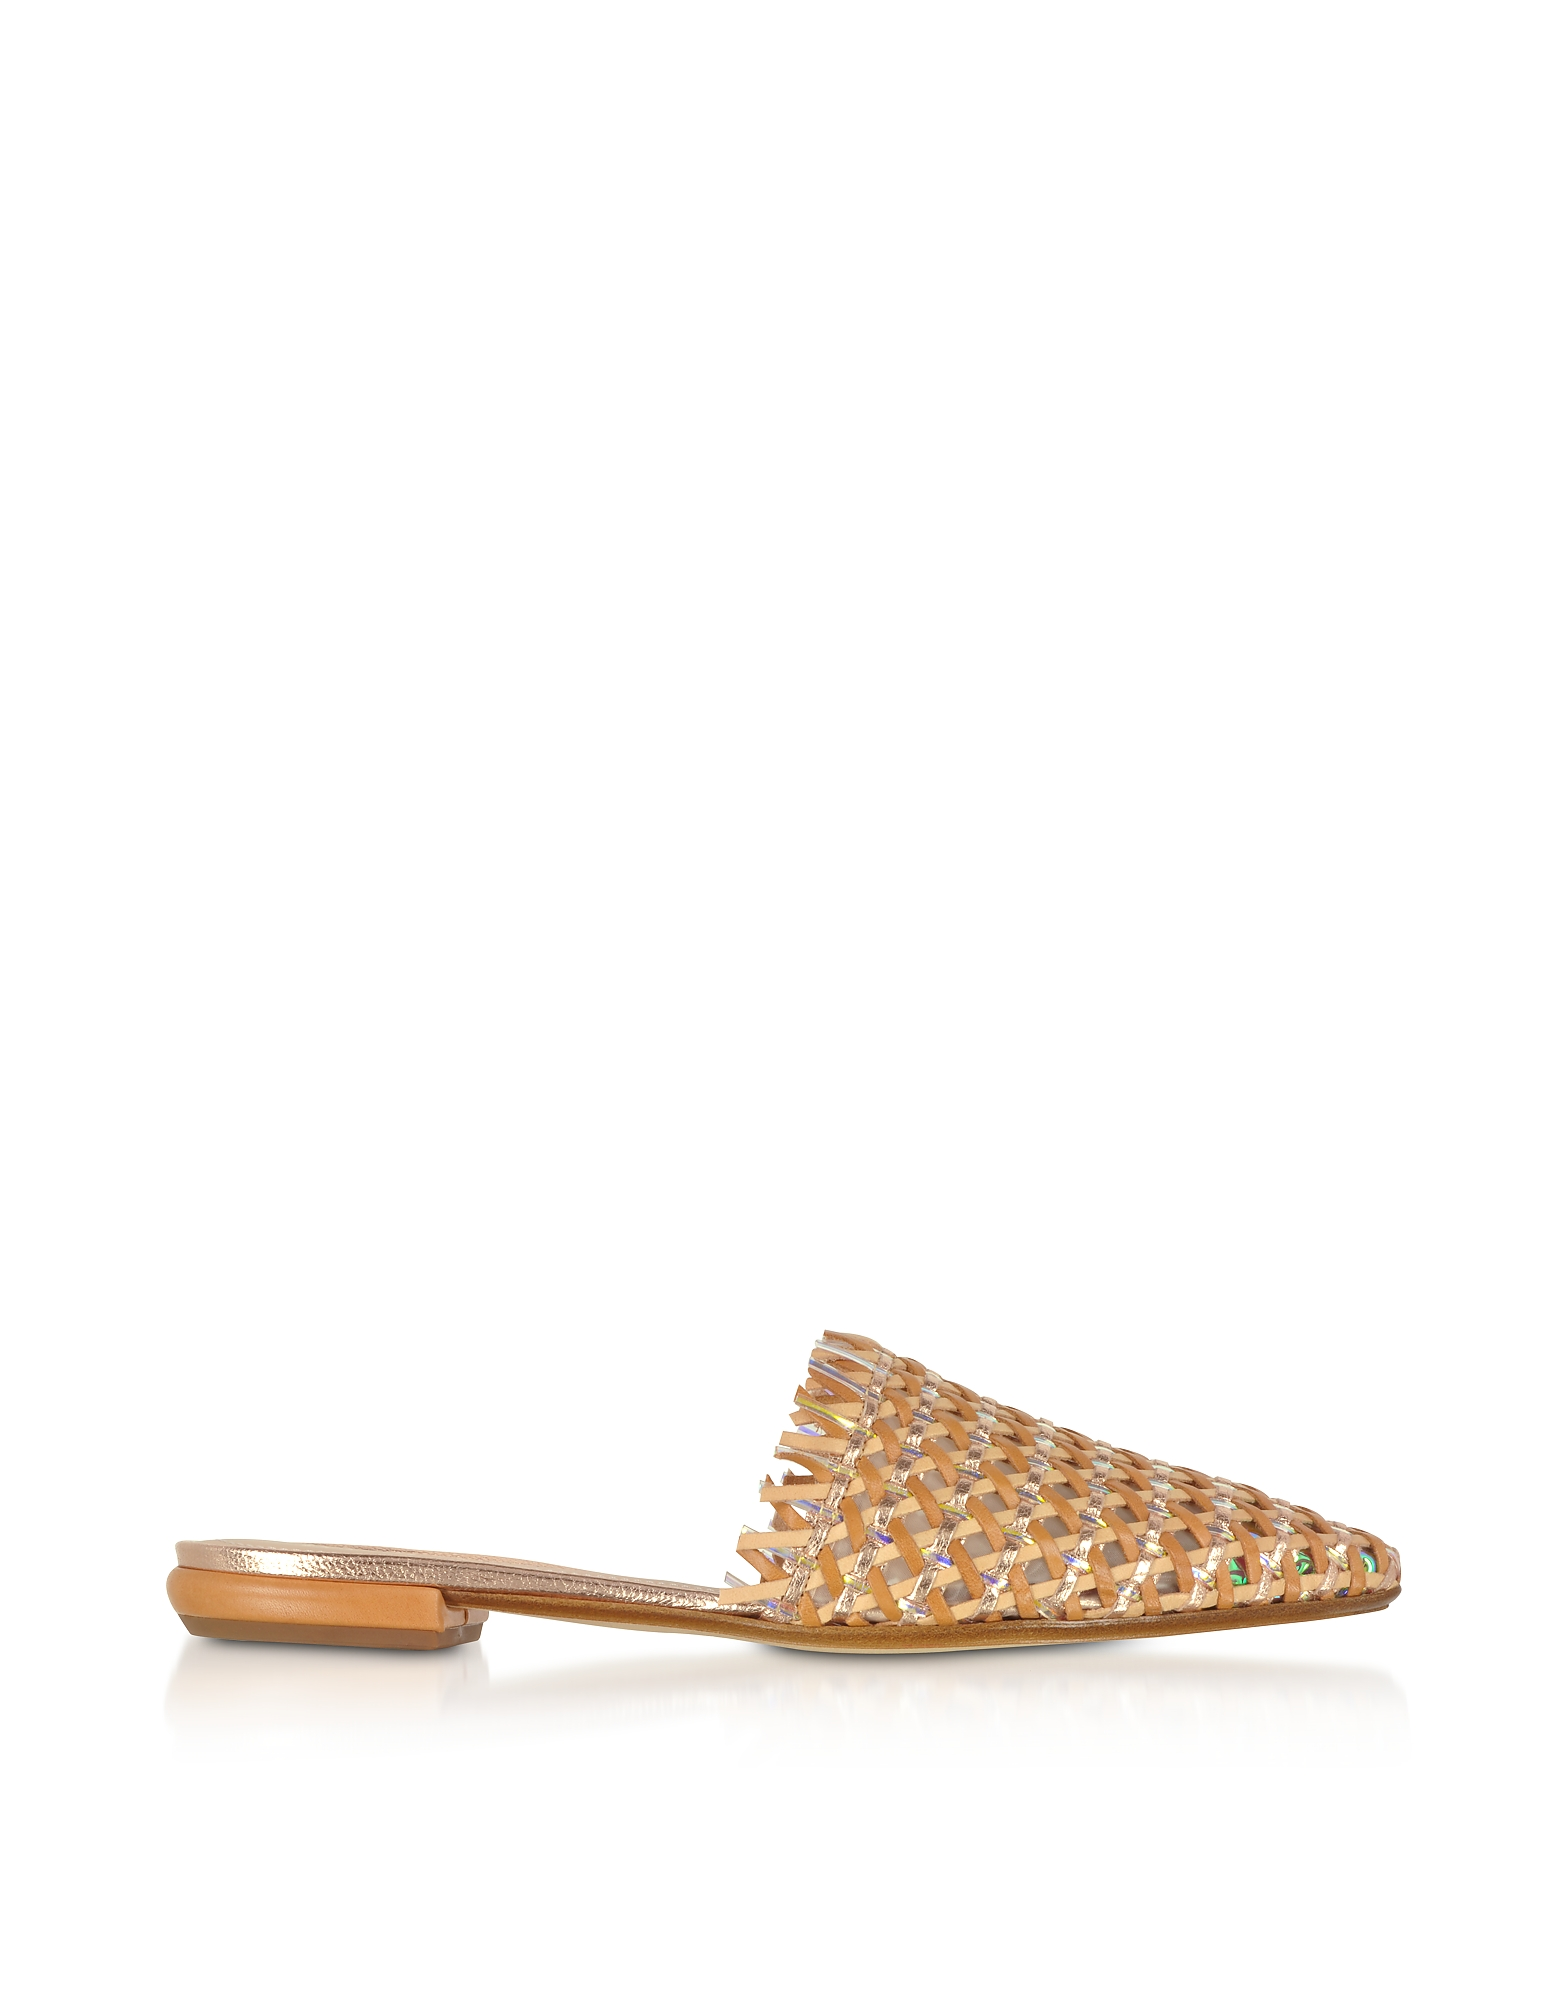 Rodo Designer Shoes, Brown and Rose Gold Woven Leather Flat Mules